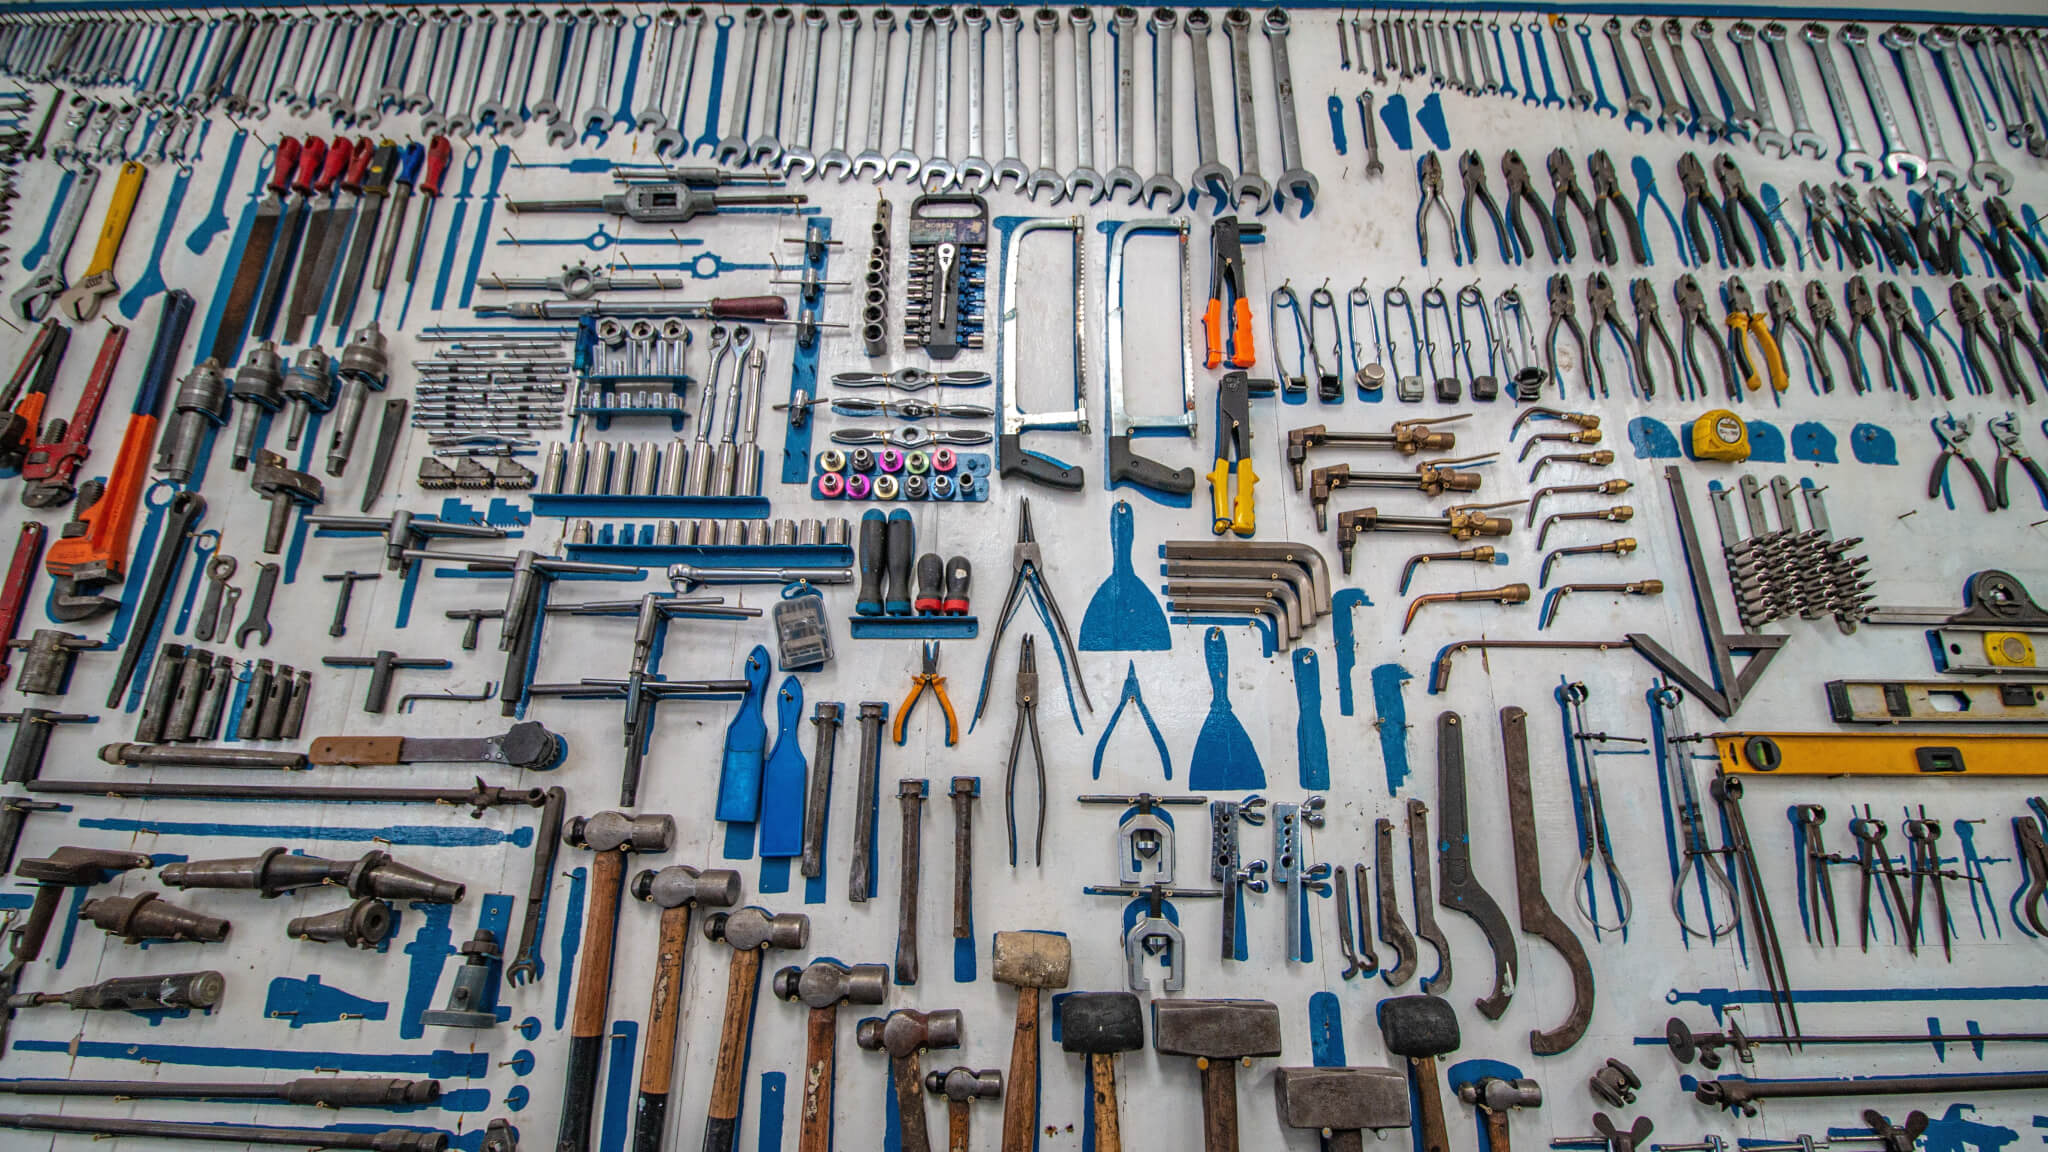 an absolute plethora of various tools in many shapes, sizes, and colors, primarily blue scraper tools but also a family of mallets and an array of wrenches never before seen by the humble eyes of man